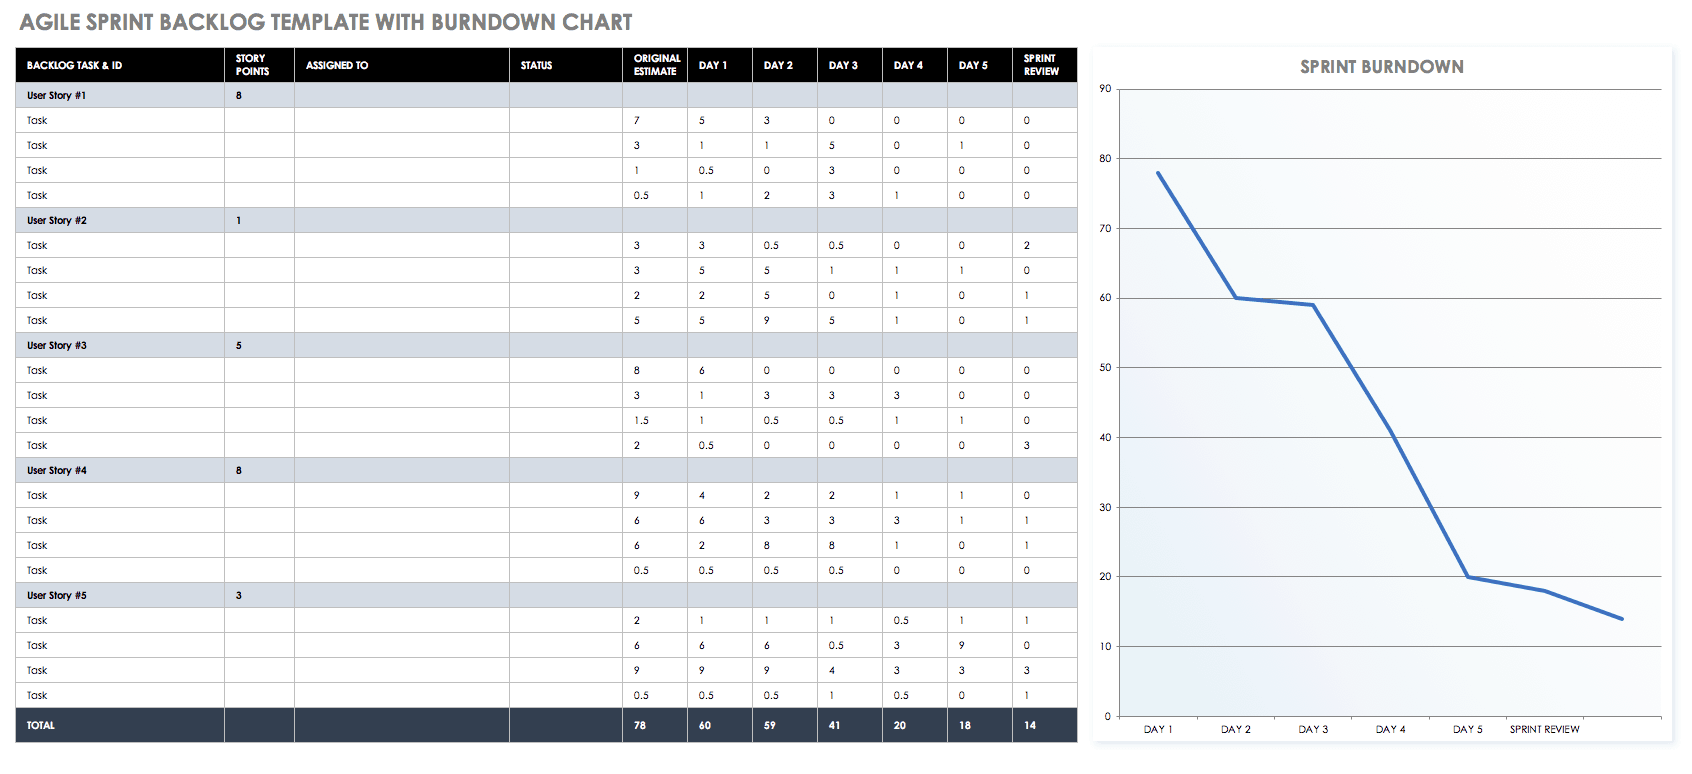 Agile Sprint Backlog Template Burndown Chart